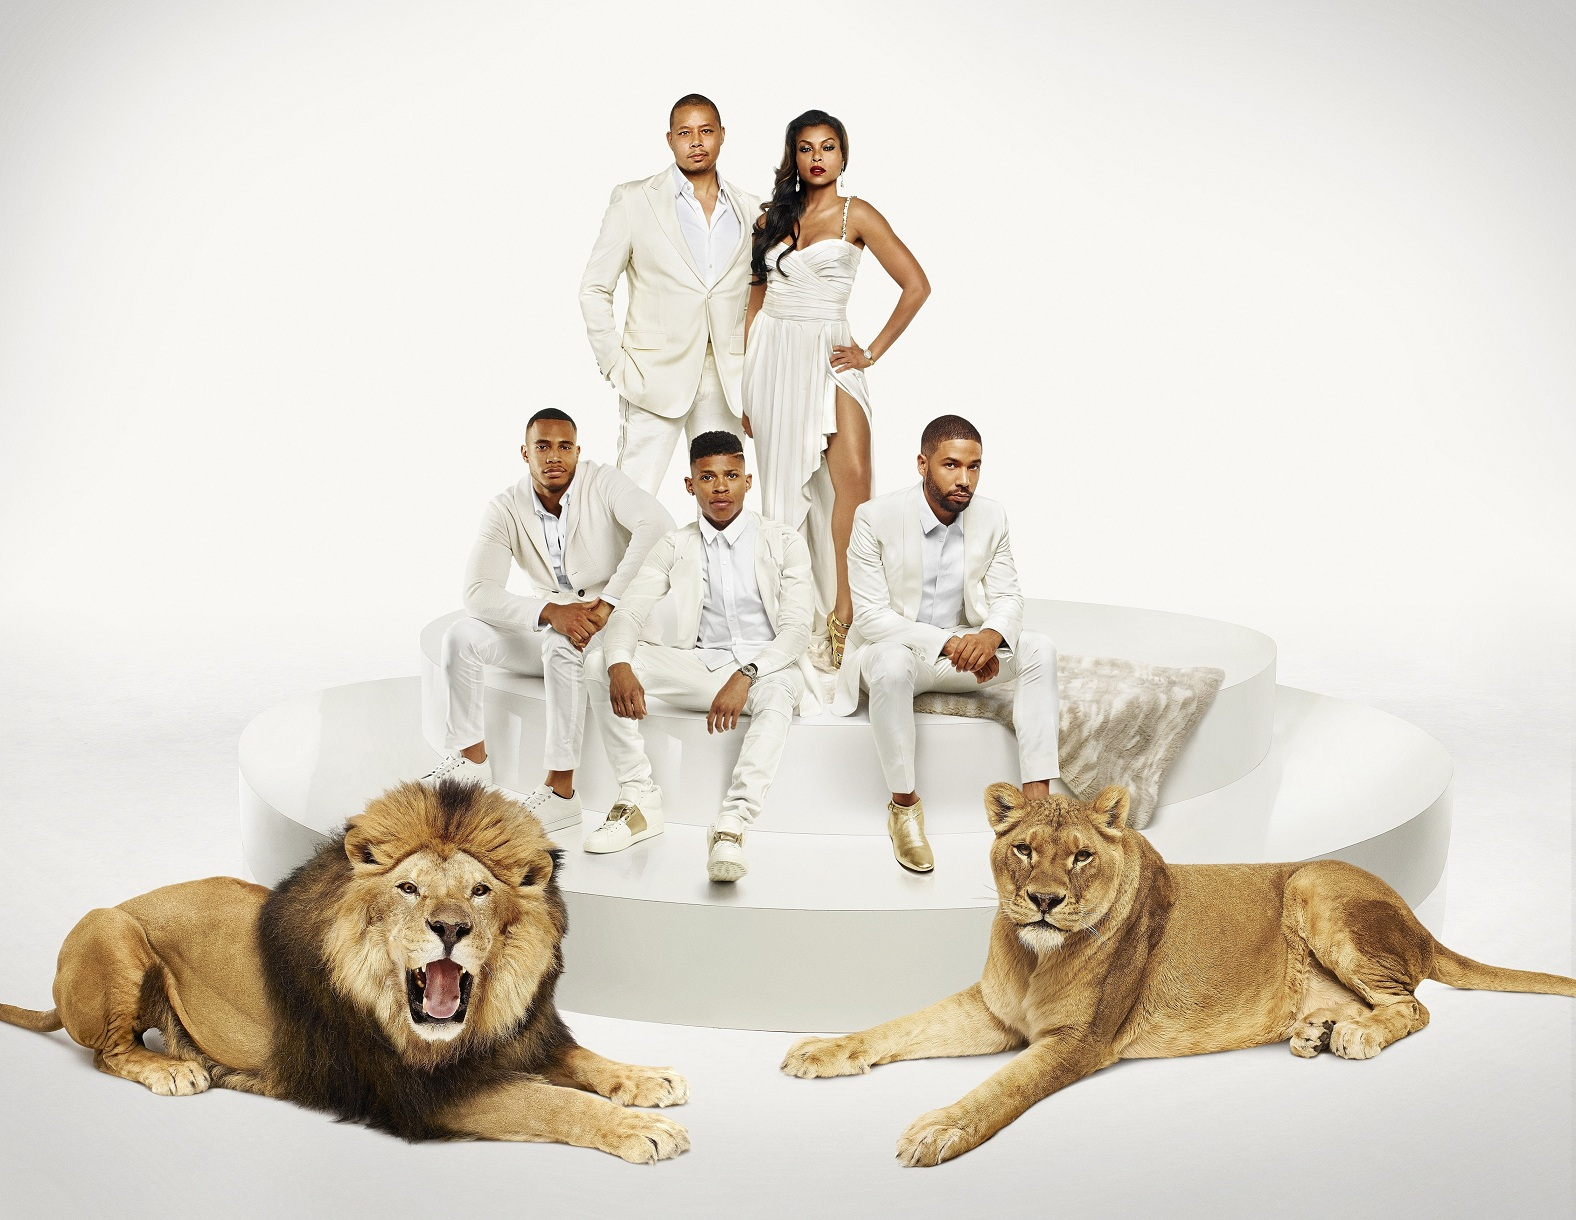 EMPIRE: Cast Pictured L-R: (Bottom Row) Trai Byers as Andre Lyon, Bryshere Gray as Hakeem Lyon and Jussie Smollett as Jamal Lyon (Top Row) Terrence Howard as Lucious Lyon and Taraji P. Henson as Cookie Lyon in EMPIRE. Season Two premieres Wednesday, Sept. 23 (9:00-10:00 PM ET/PT) on FOX. ©2015 Fox Broadcasting Co. Cr: James Dimmock/FOX.